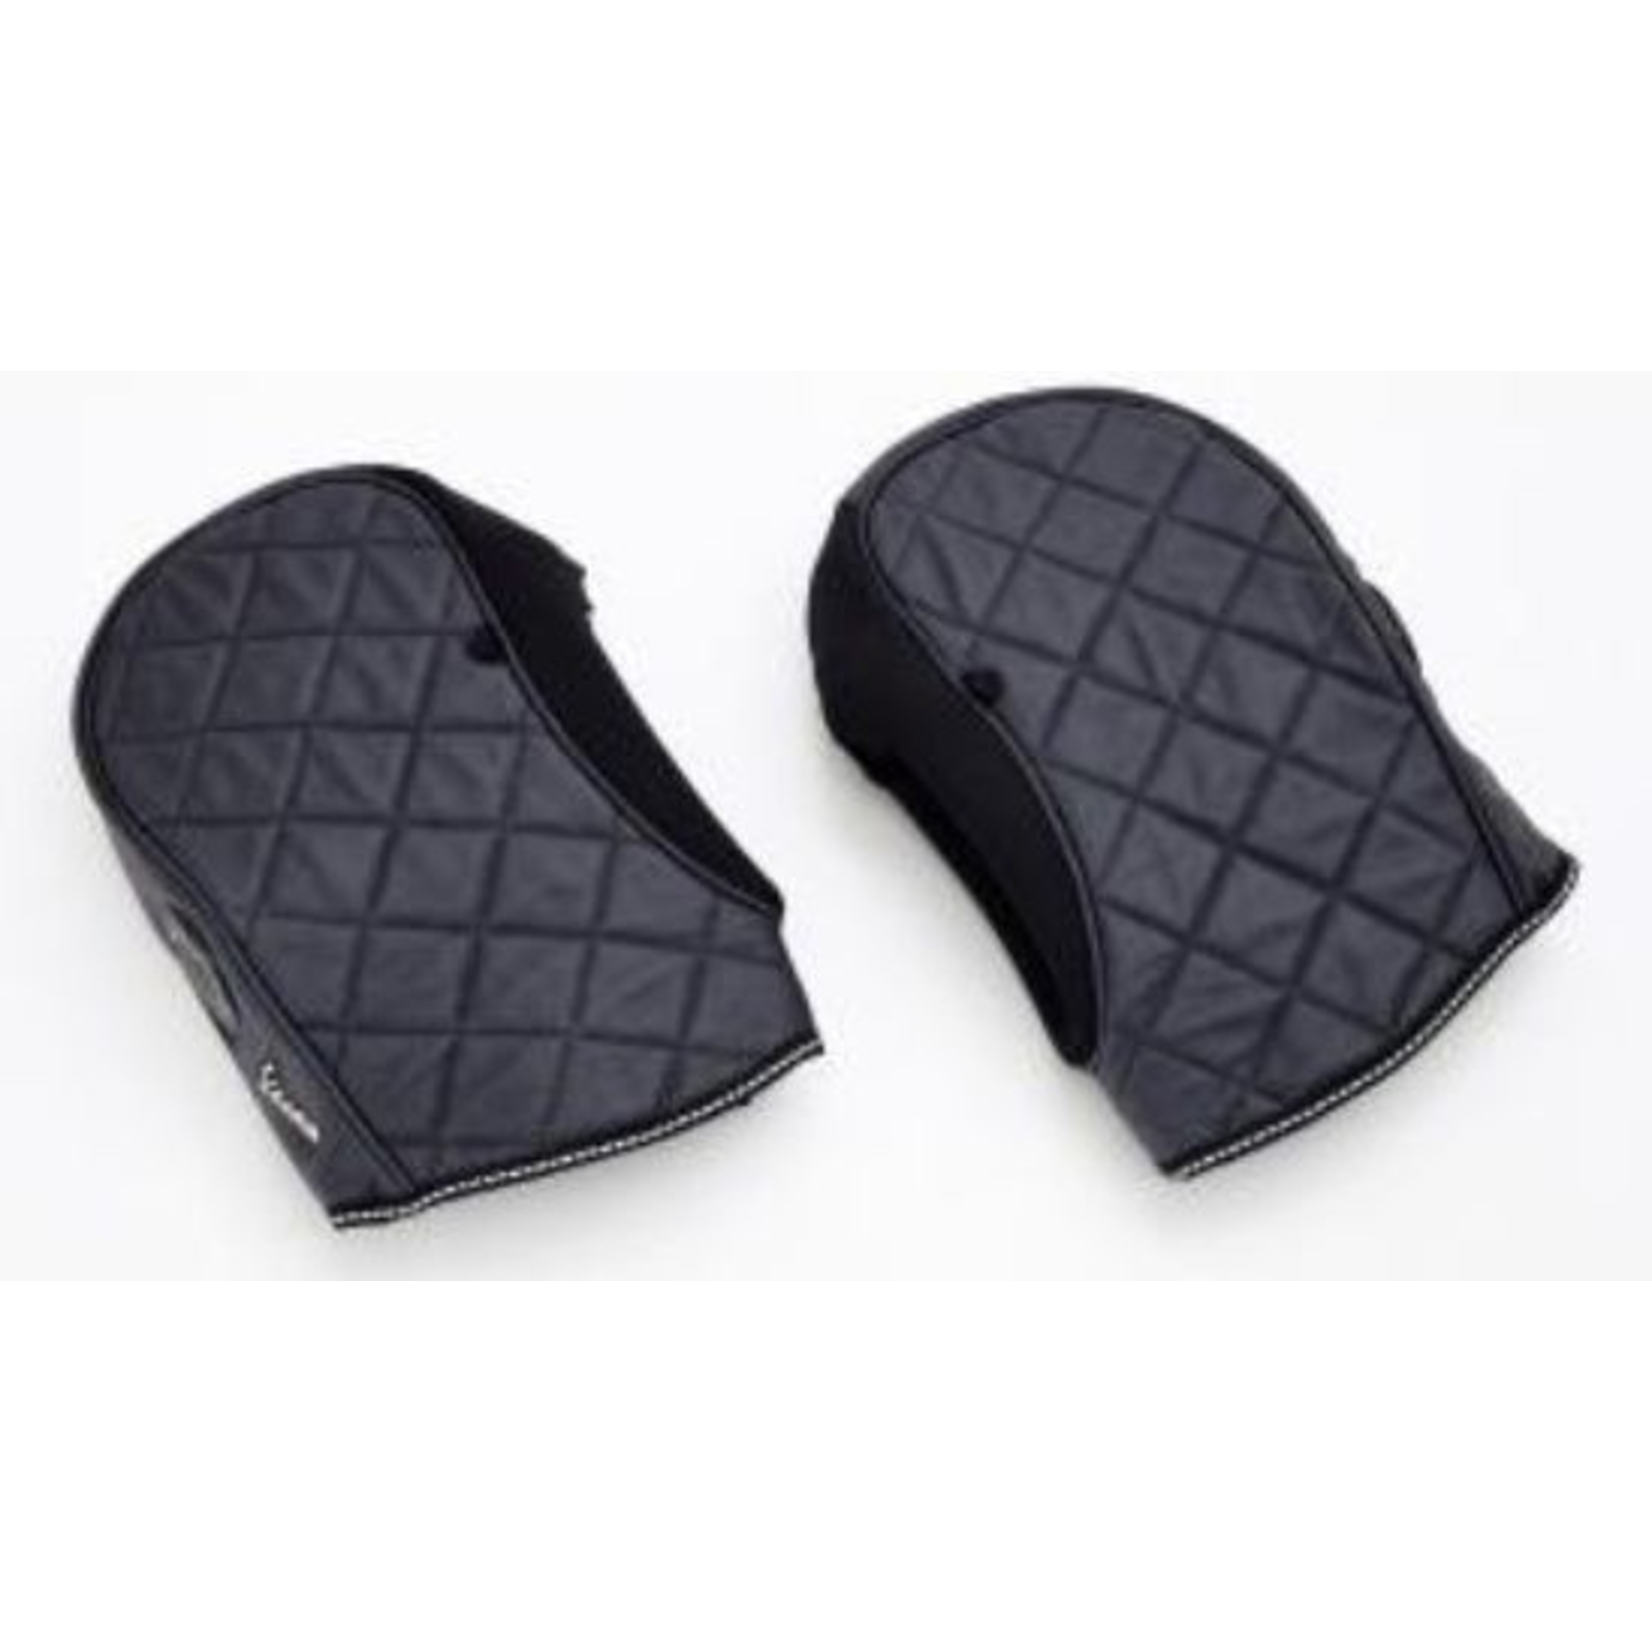 Accessories Hand Grip Covers, Vespa 946